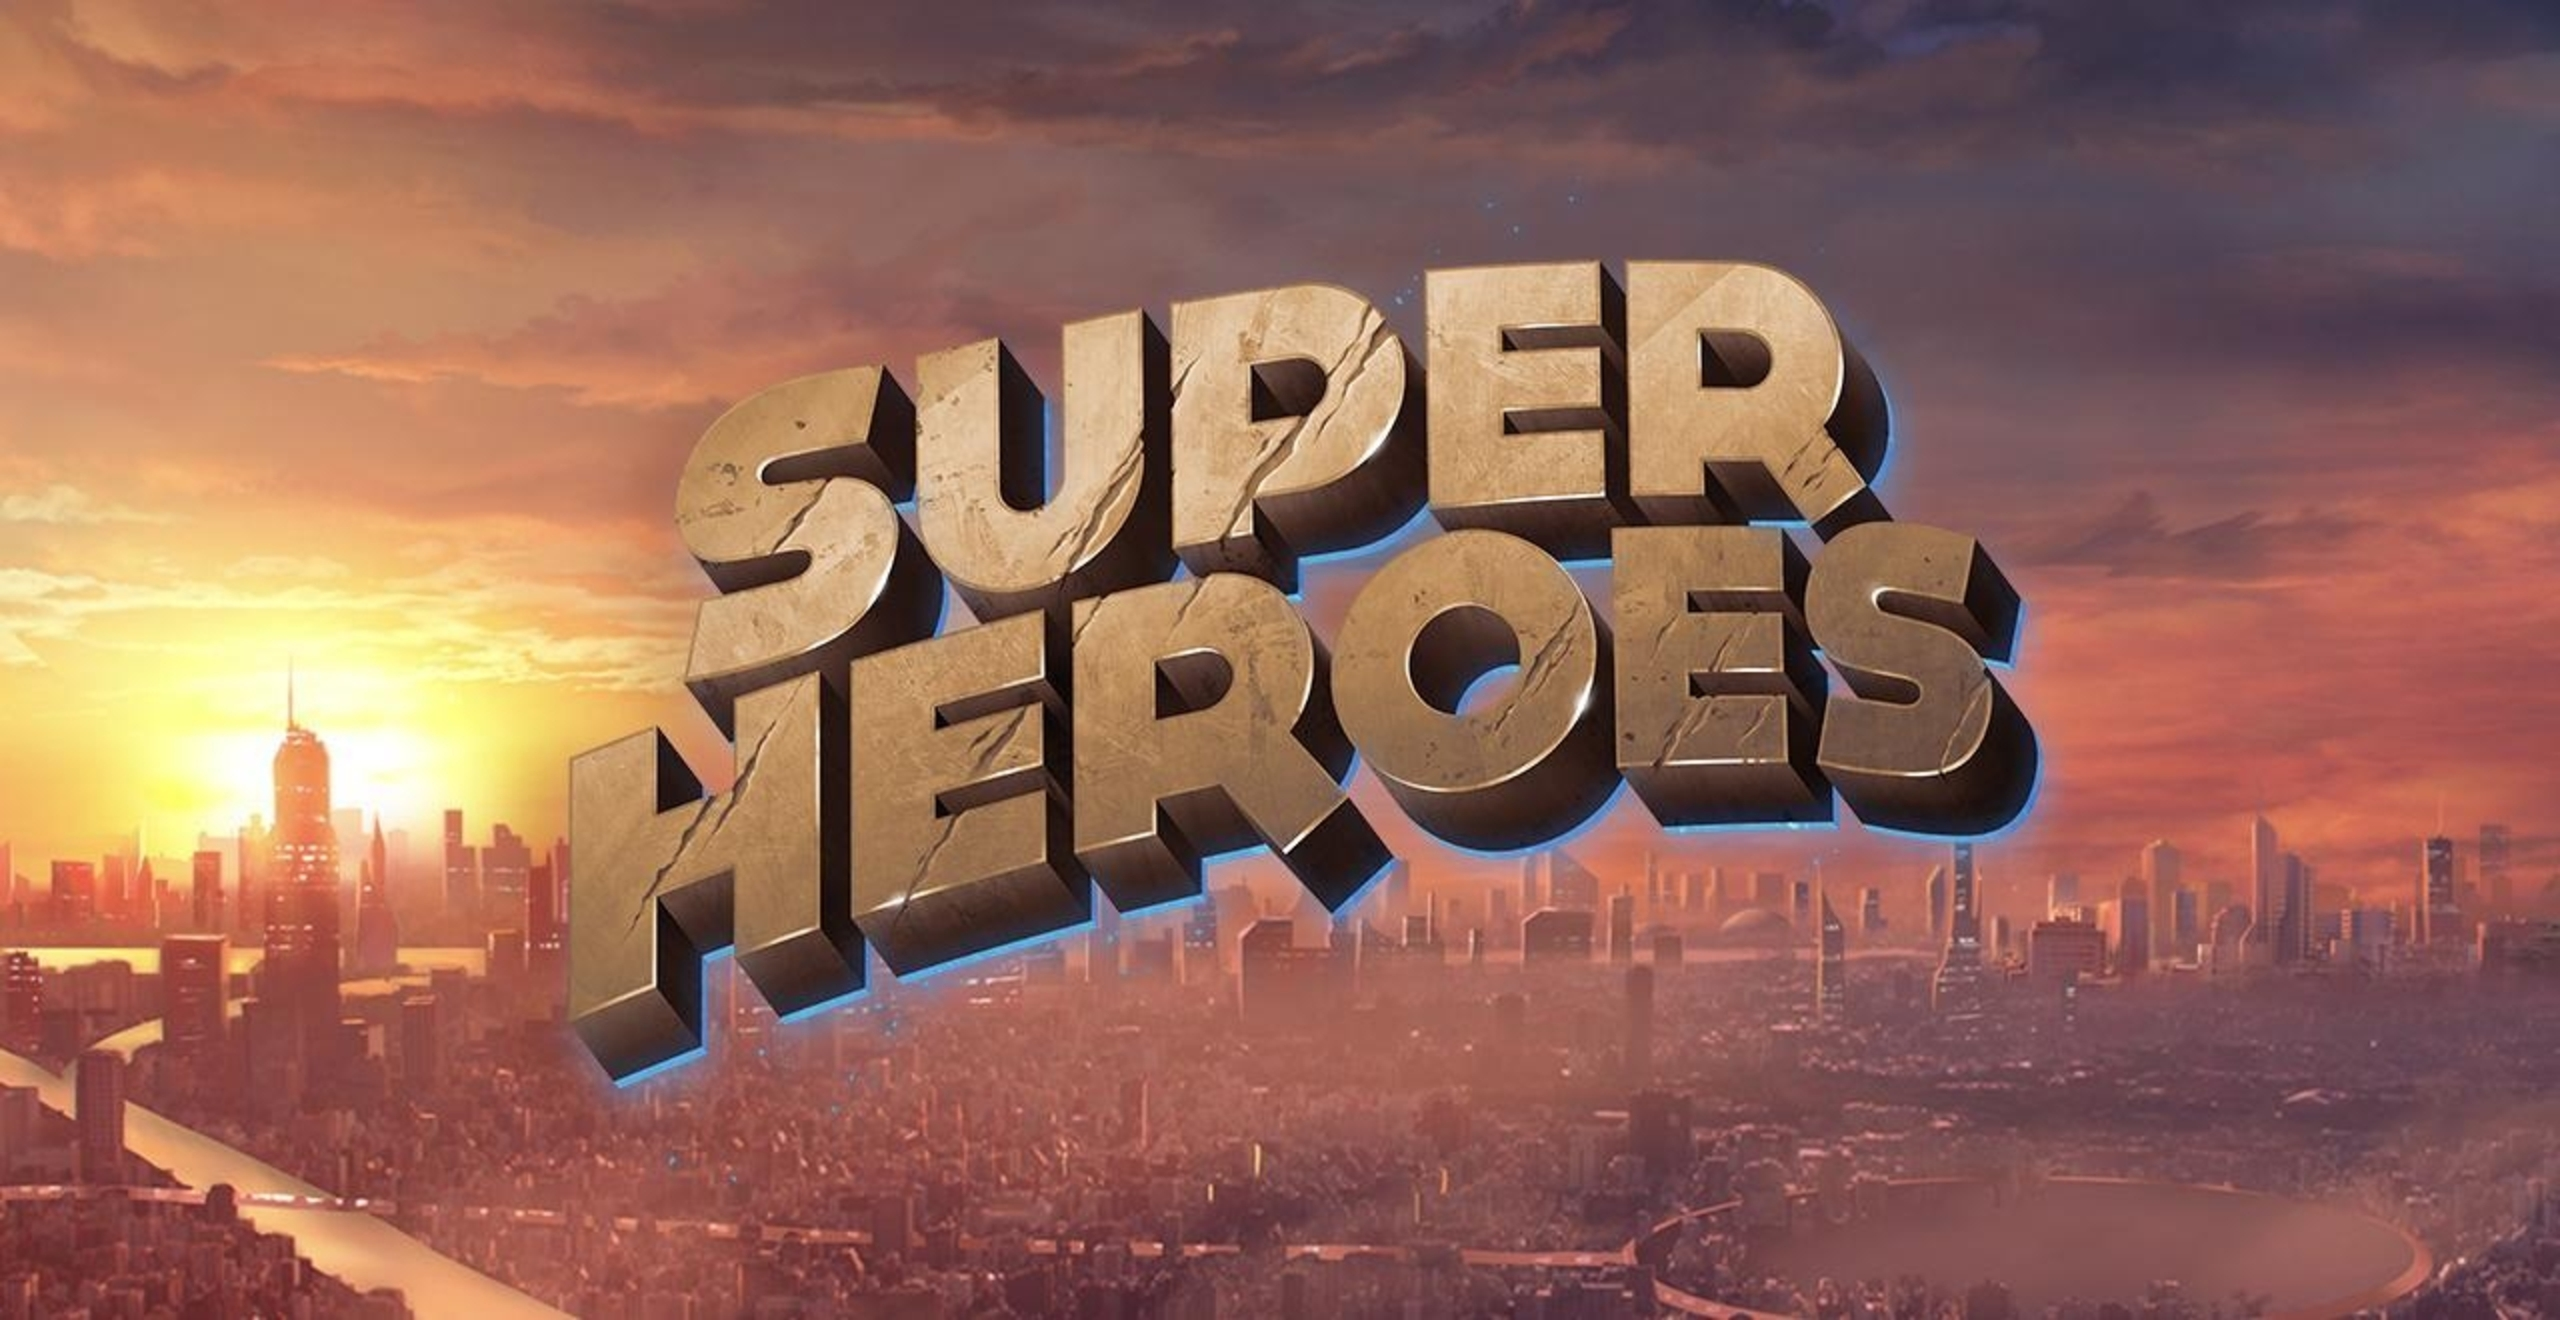 Super Heroes Online Slot Demo Game by Yggdrasil Gaming